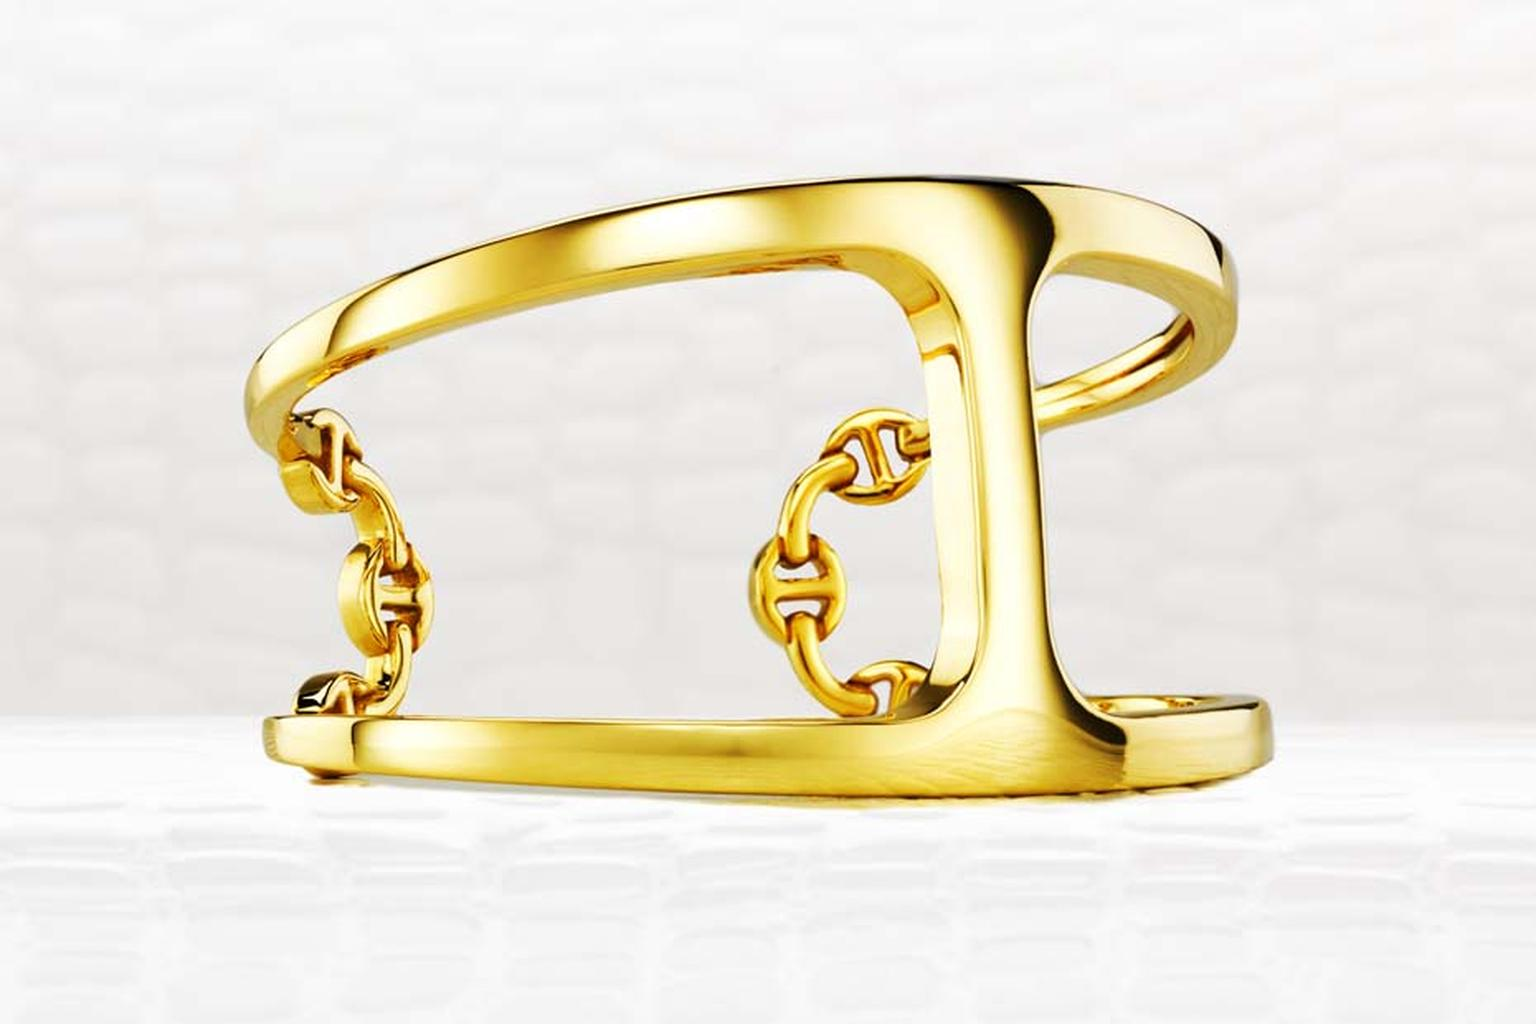 Hoorsenbuhs Dame Phantom cuff bracelet in yellow gold.